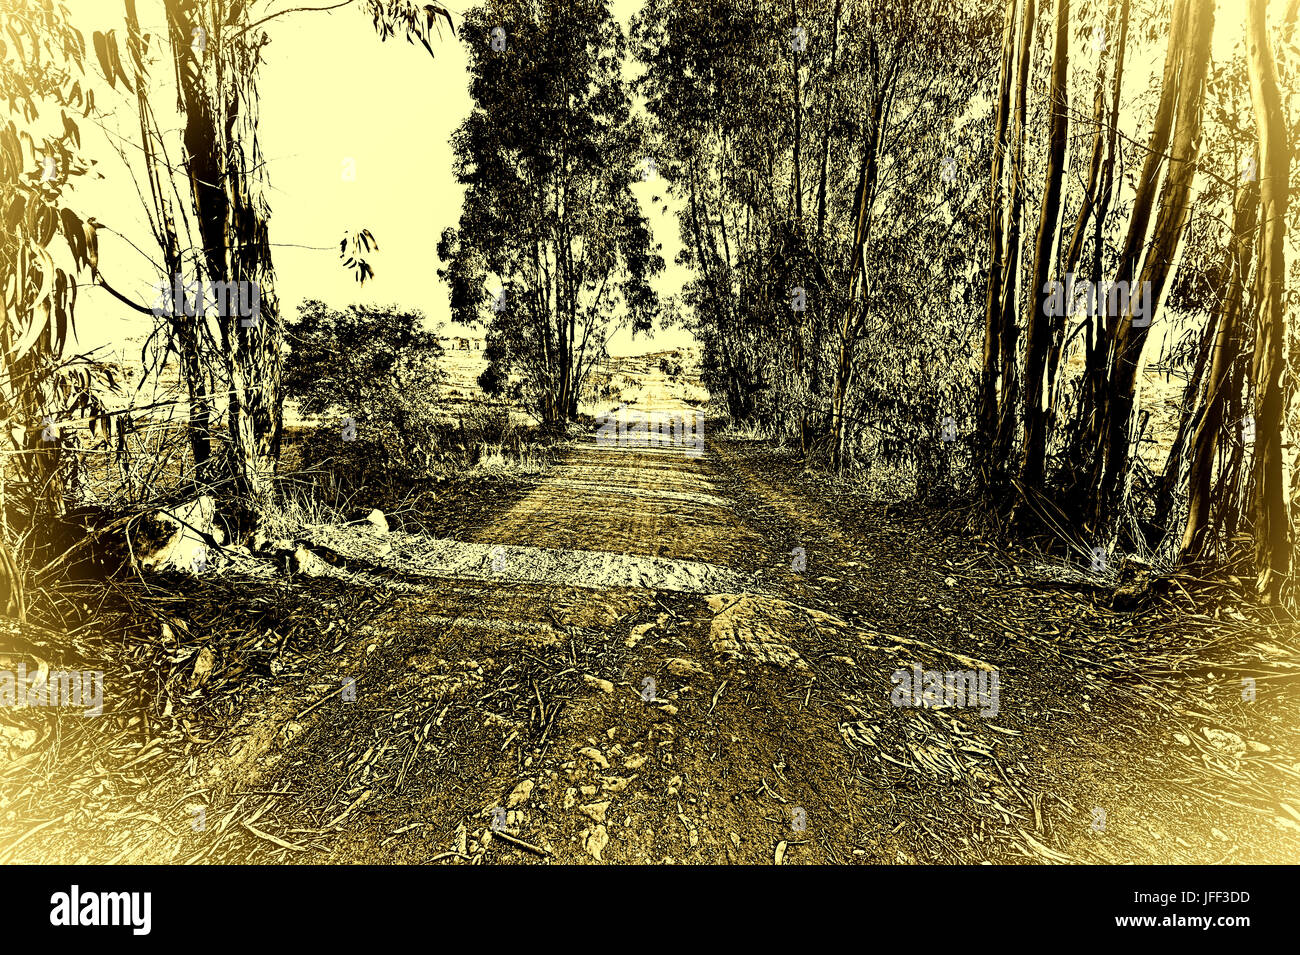 Country Dirt Road Stock Photo